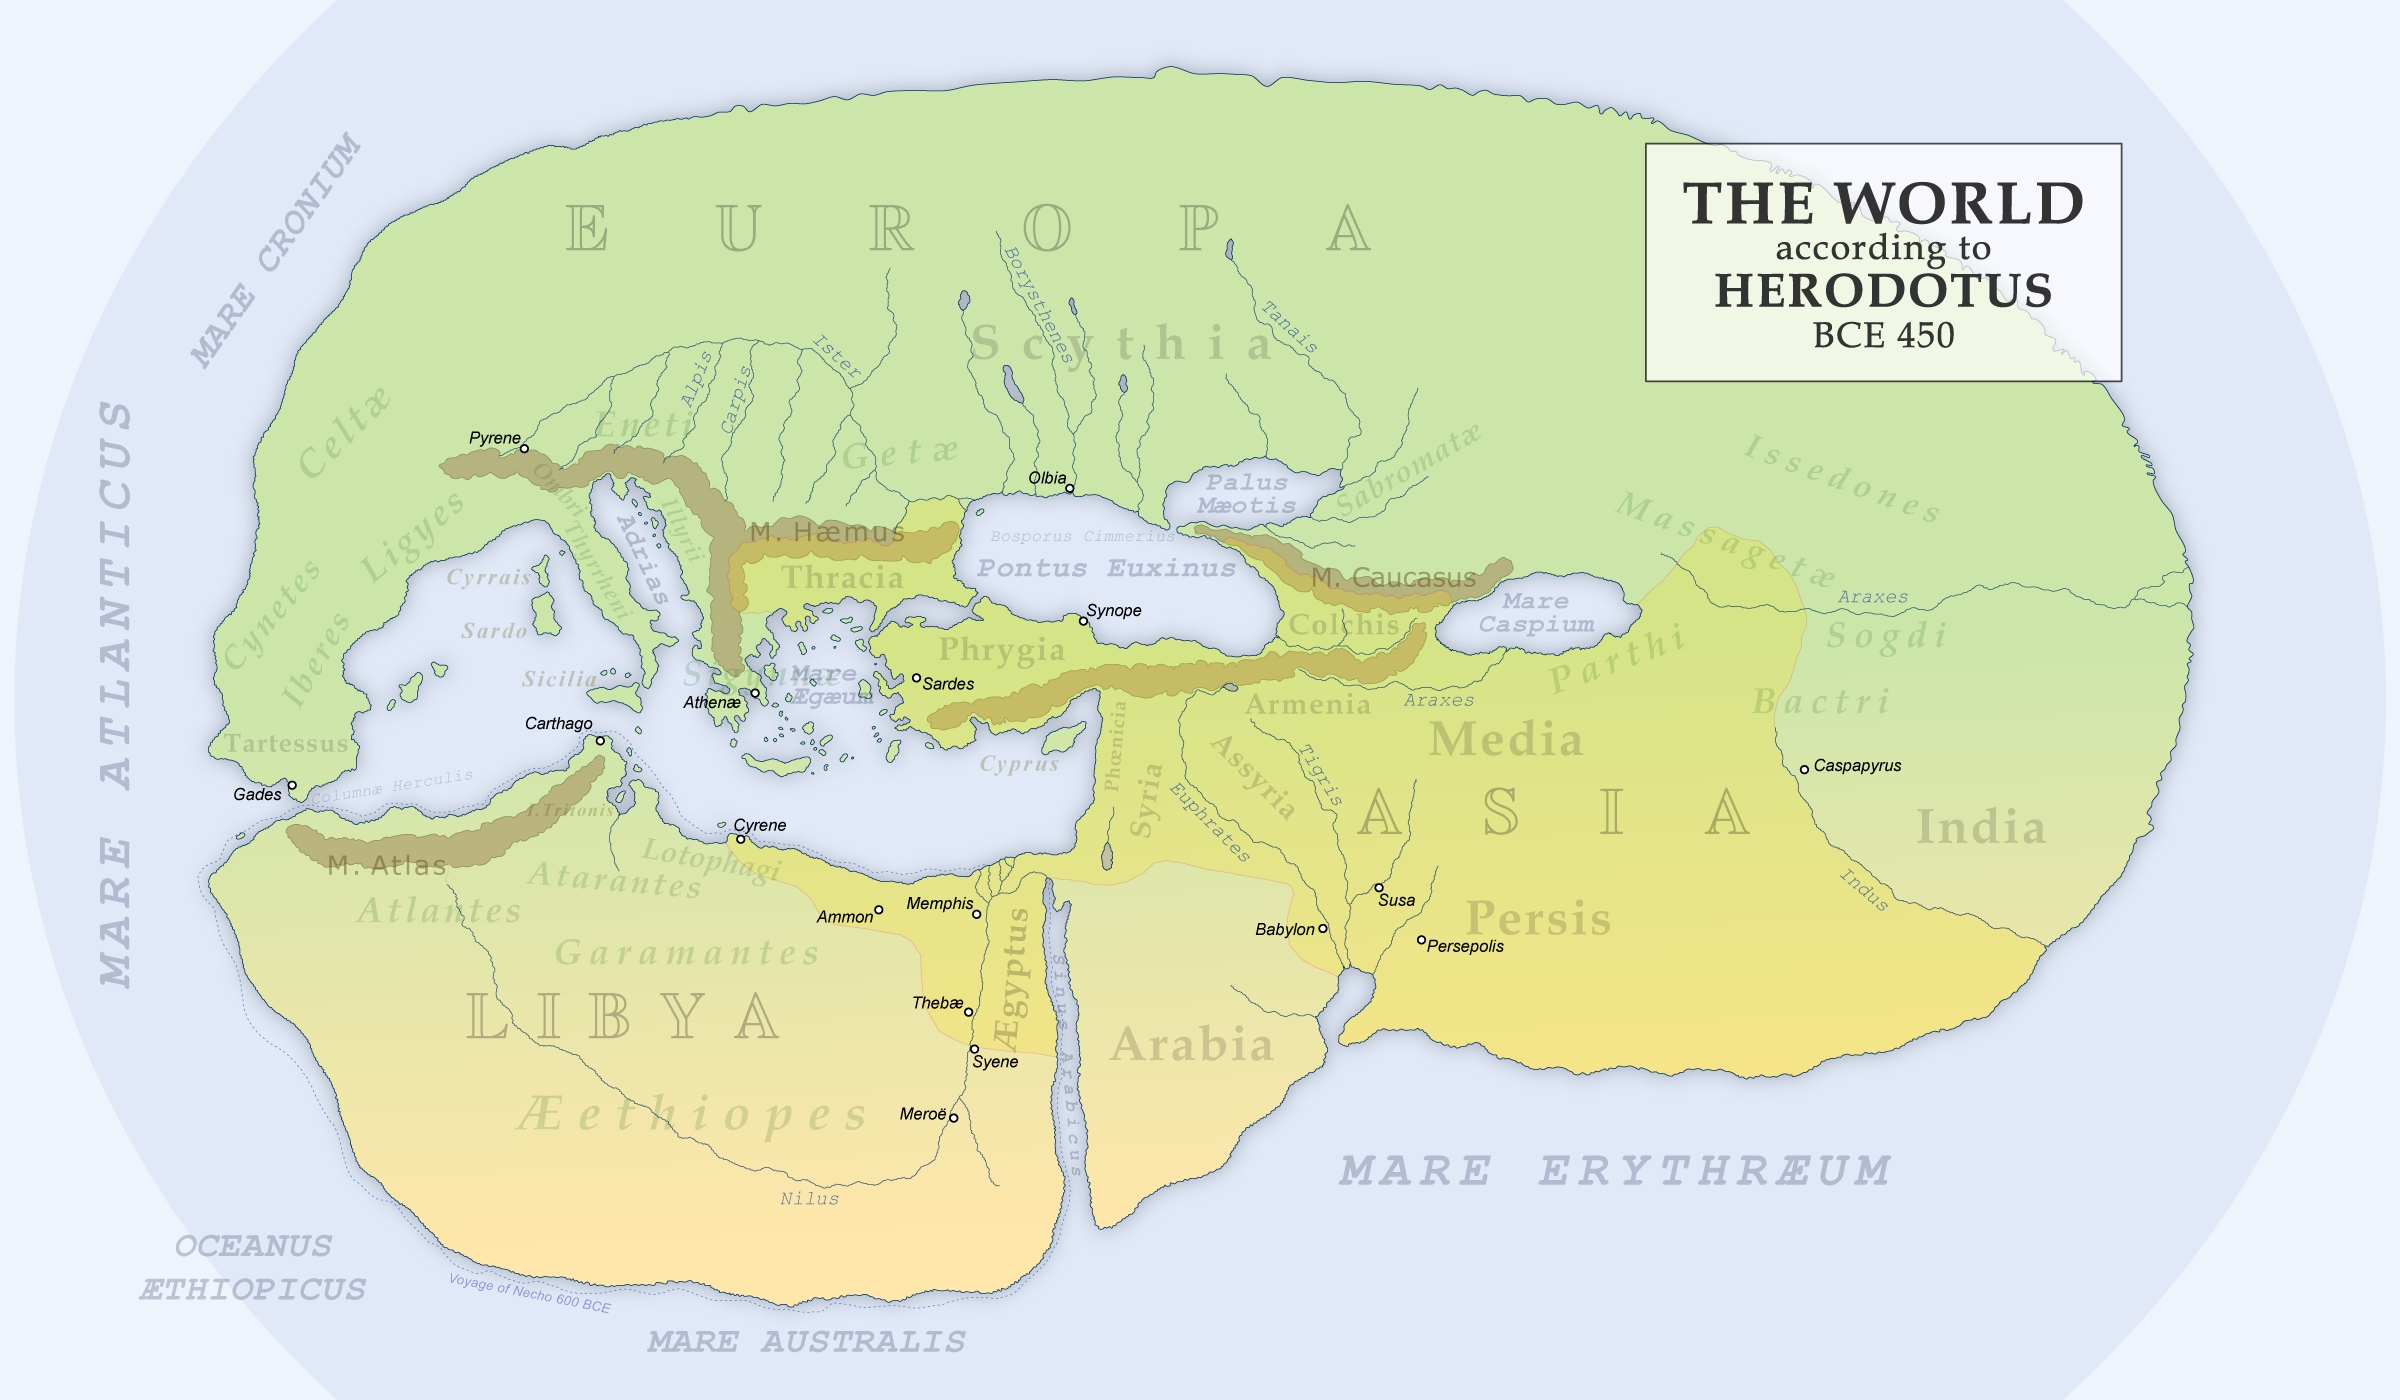 Fileherodotus world mapg wikimedia commons fileherodotus world mapg gumiabroncs Image collections